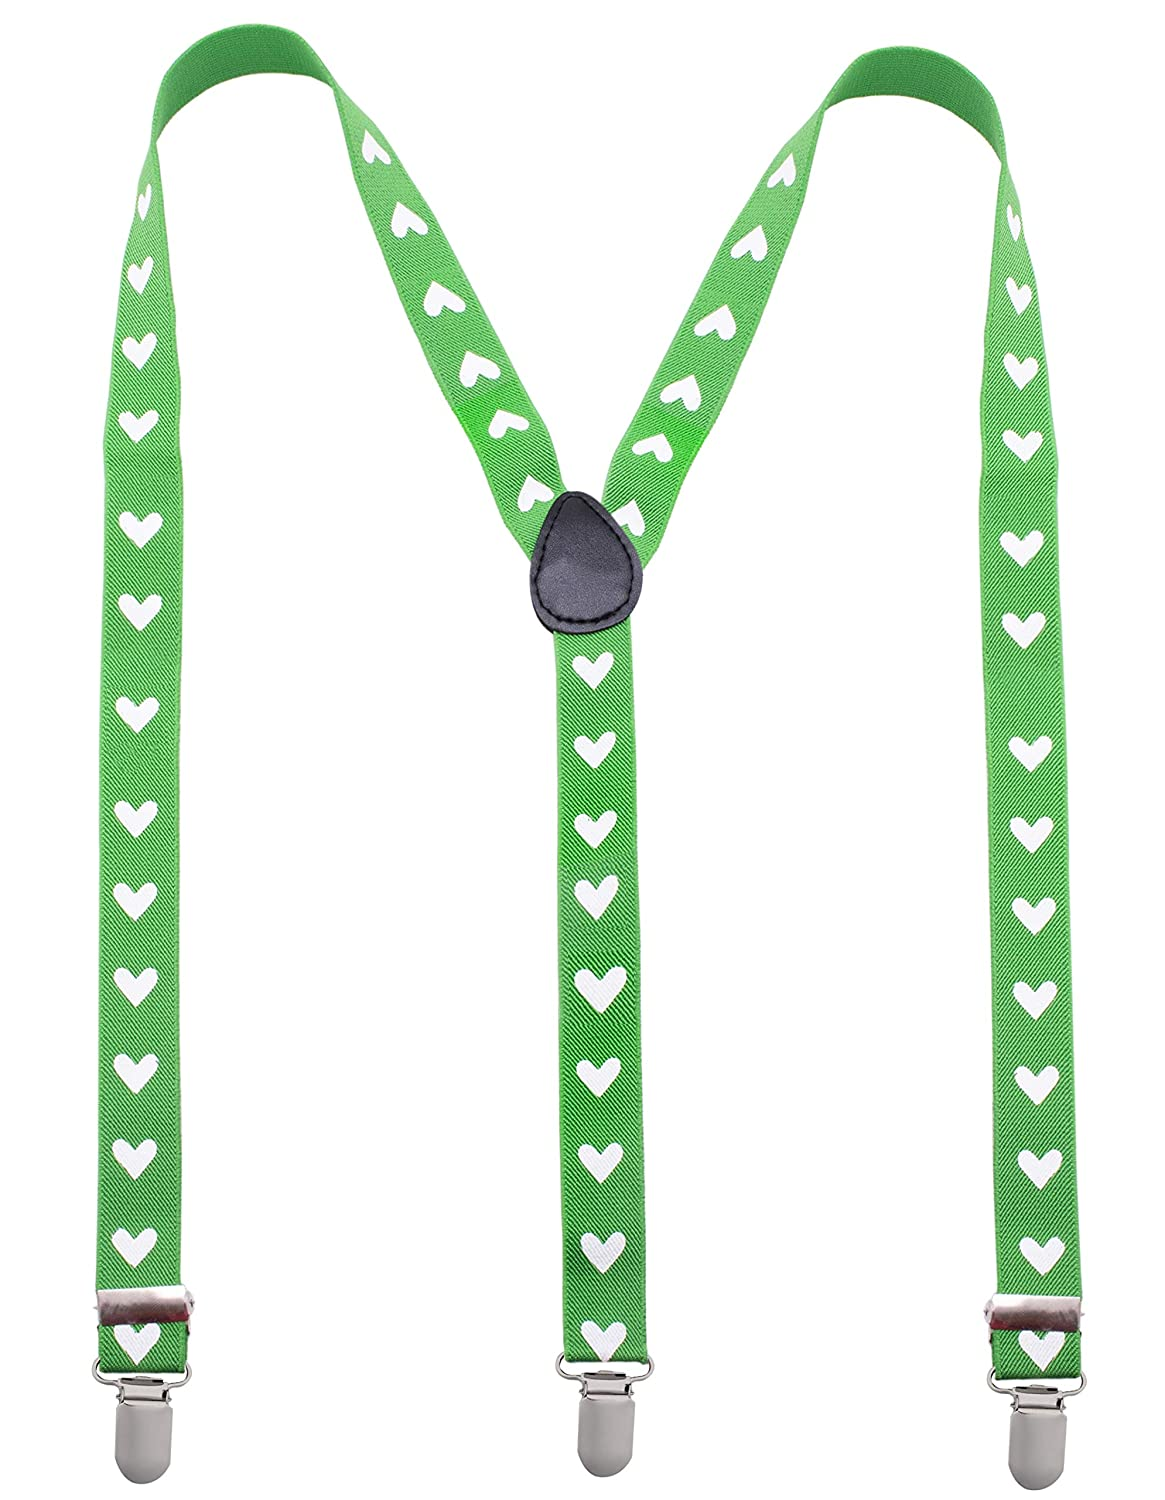 Mens Suspenders with Clips Many Colors to Choose From Man of Men 10384 Fashion Heart Suspenders for Men